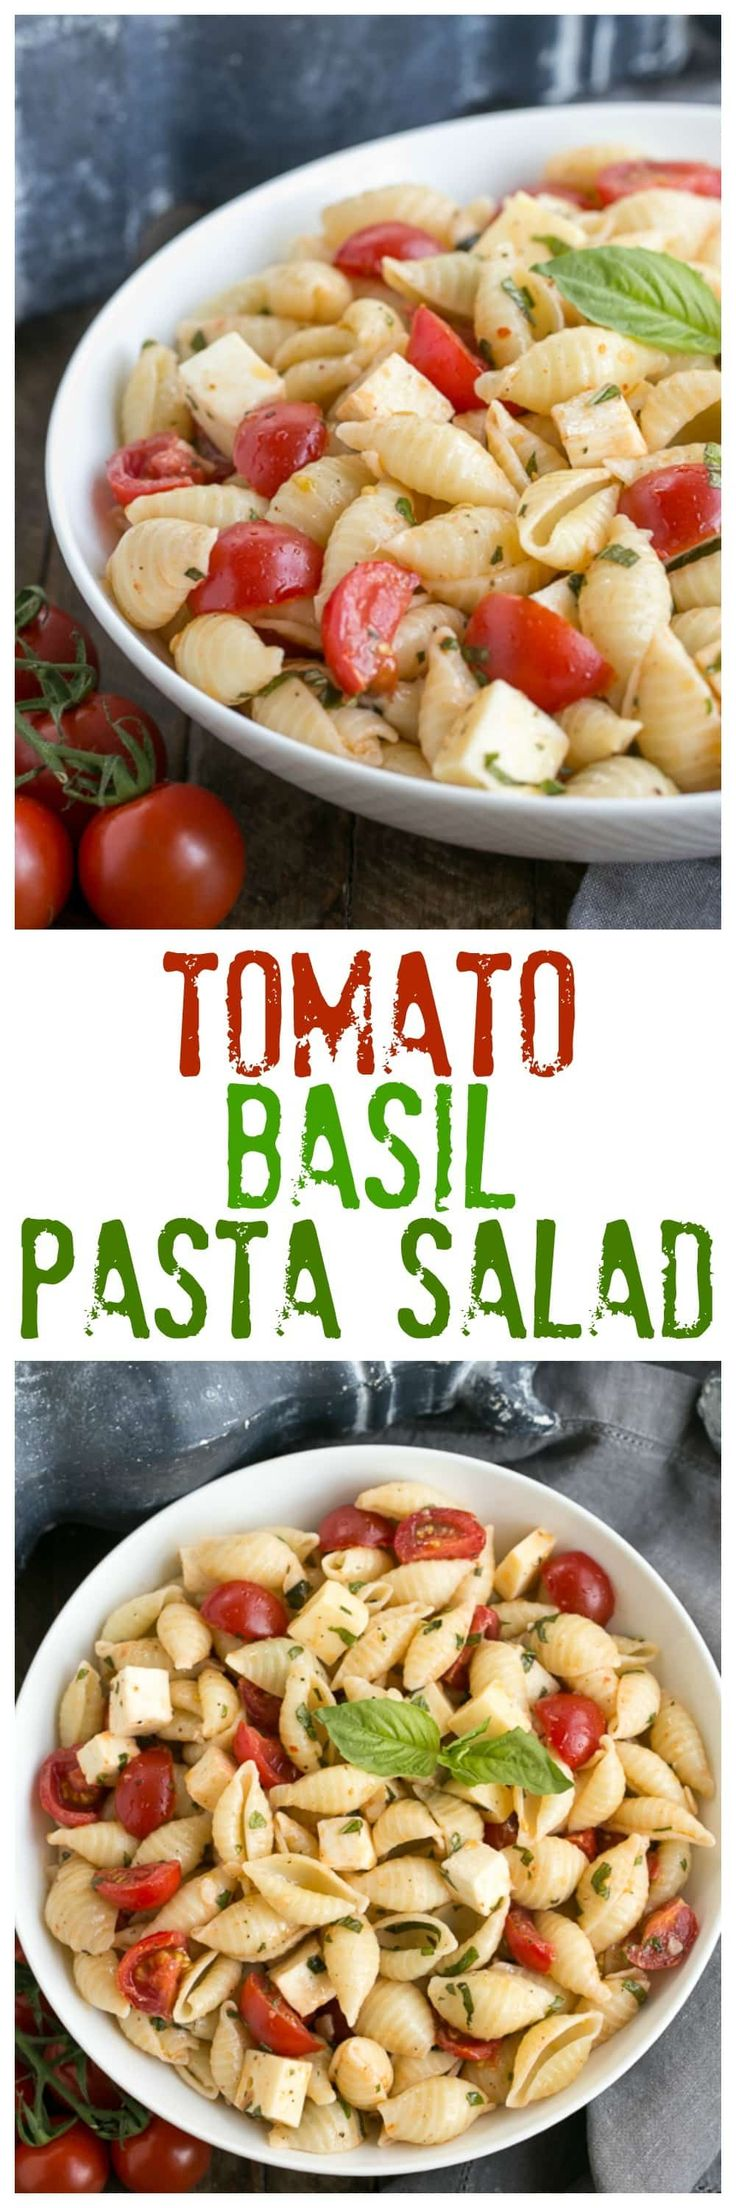 Tomato Basil Pasta Salad with Mozzarella & Fontina | Perfect for pitch-ins,, picnics and summer entertaining! @lizzydo